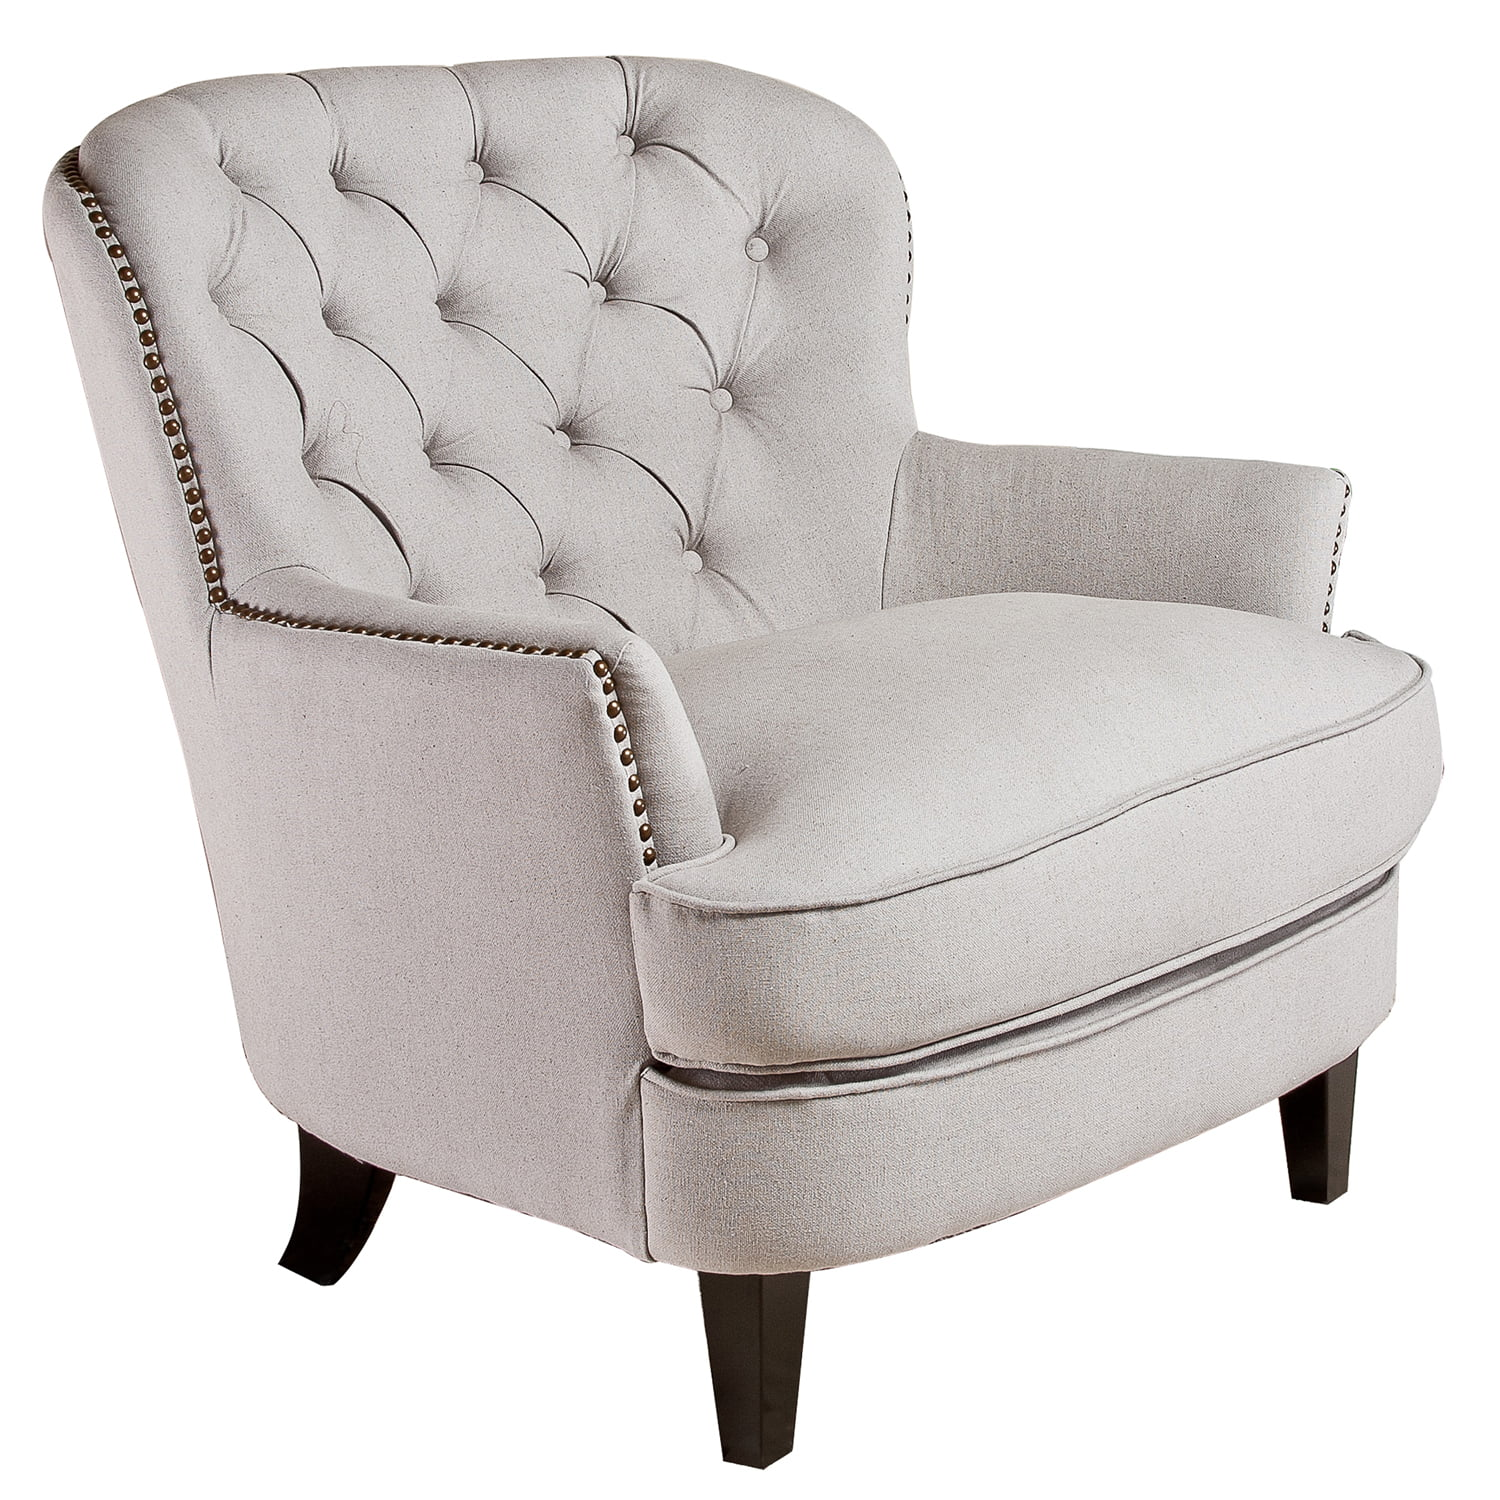 Tilden Tufted Fabric Club Chair, Multiple Colors by GDF Studio